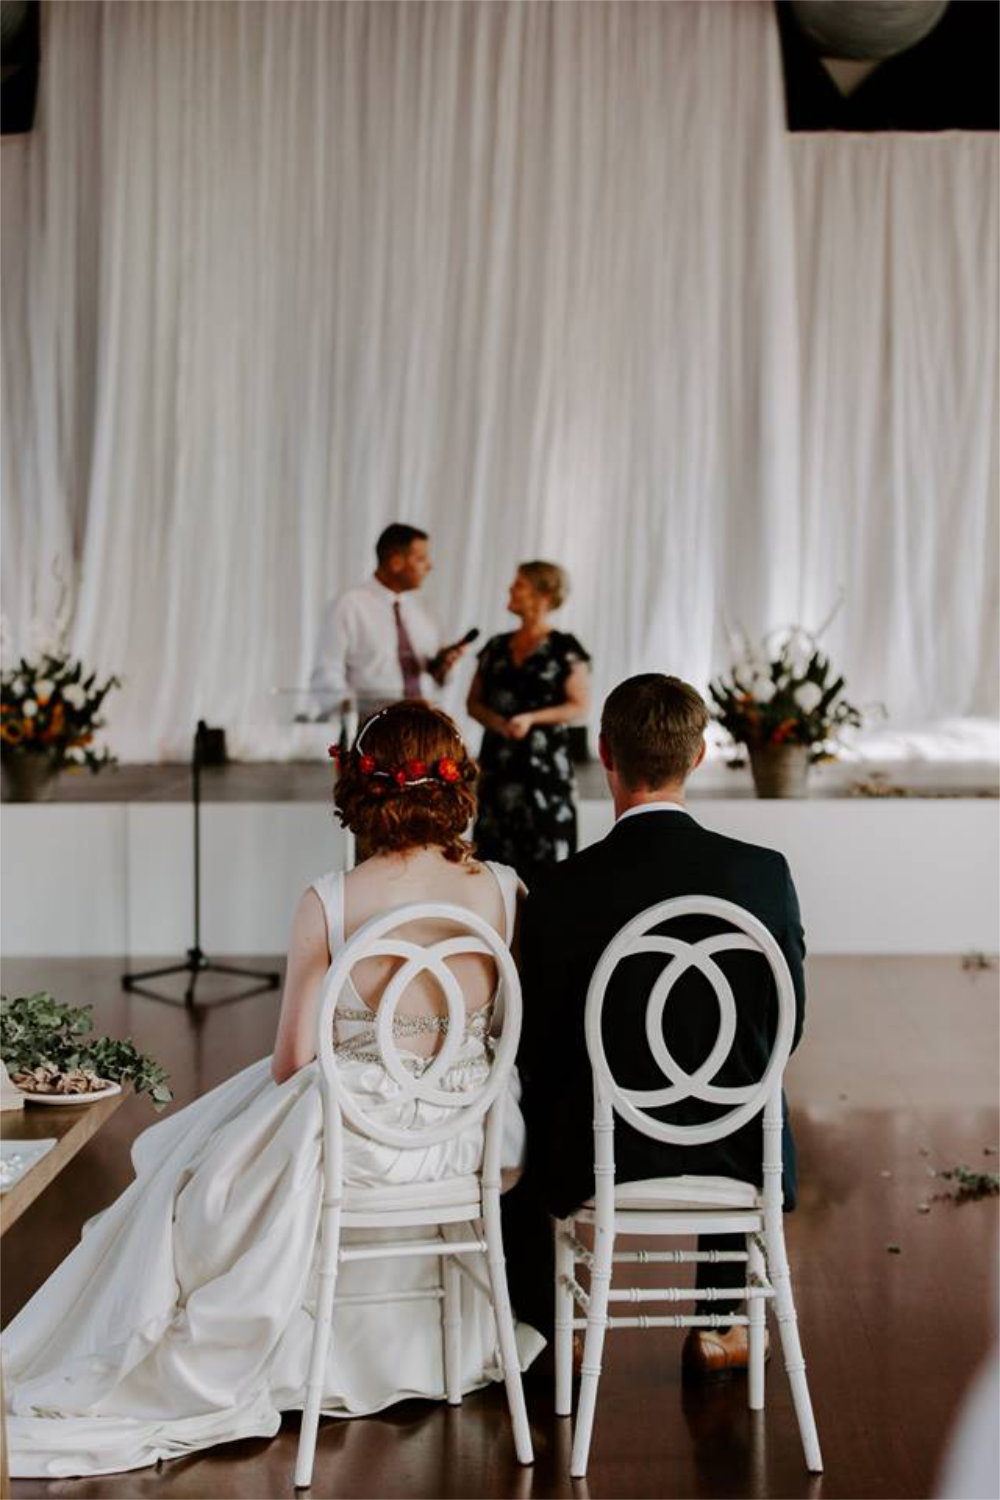 How to Entertain Guests During Your Socially-Distant COVID-19 Wedding 2